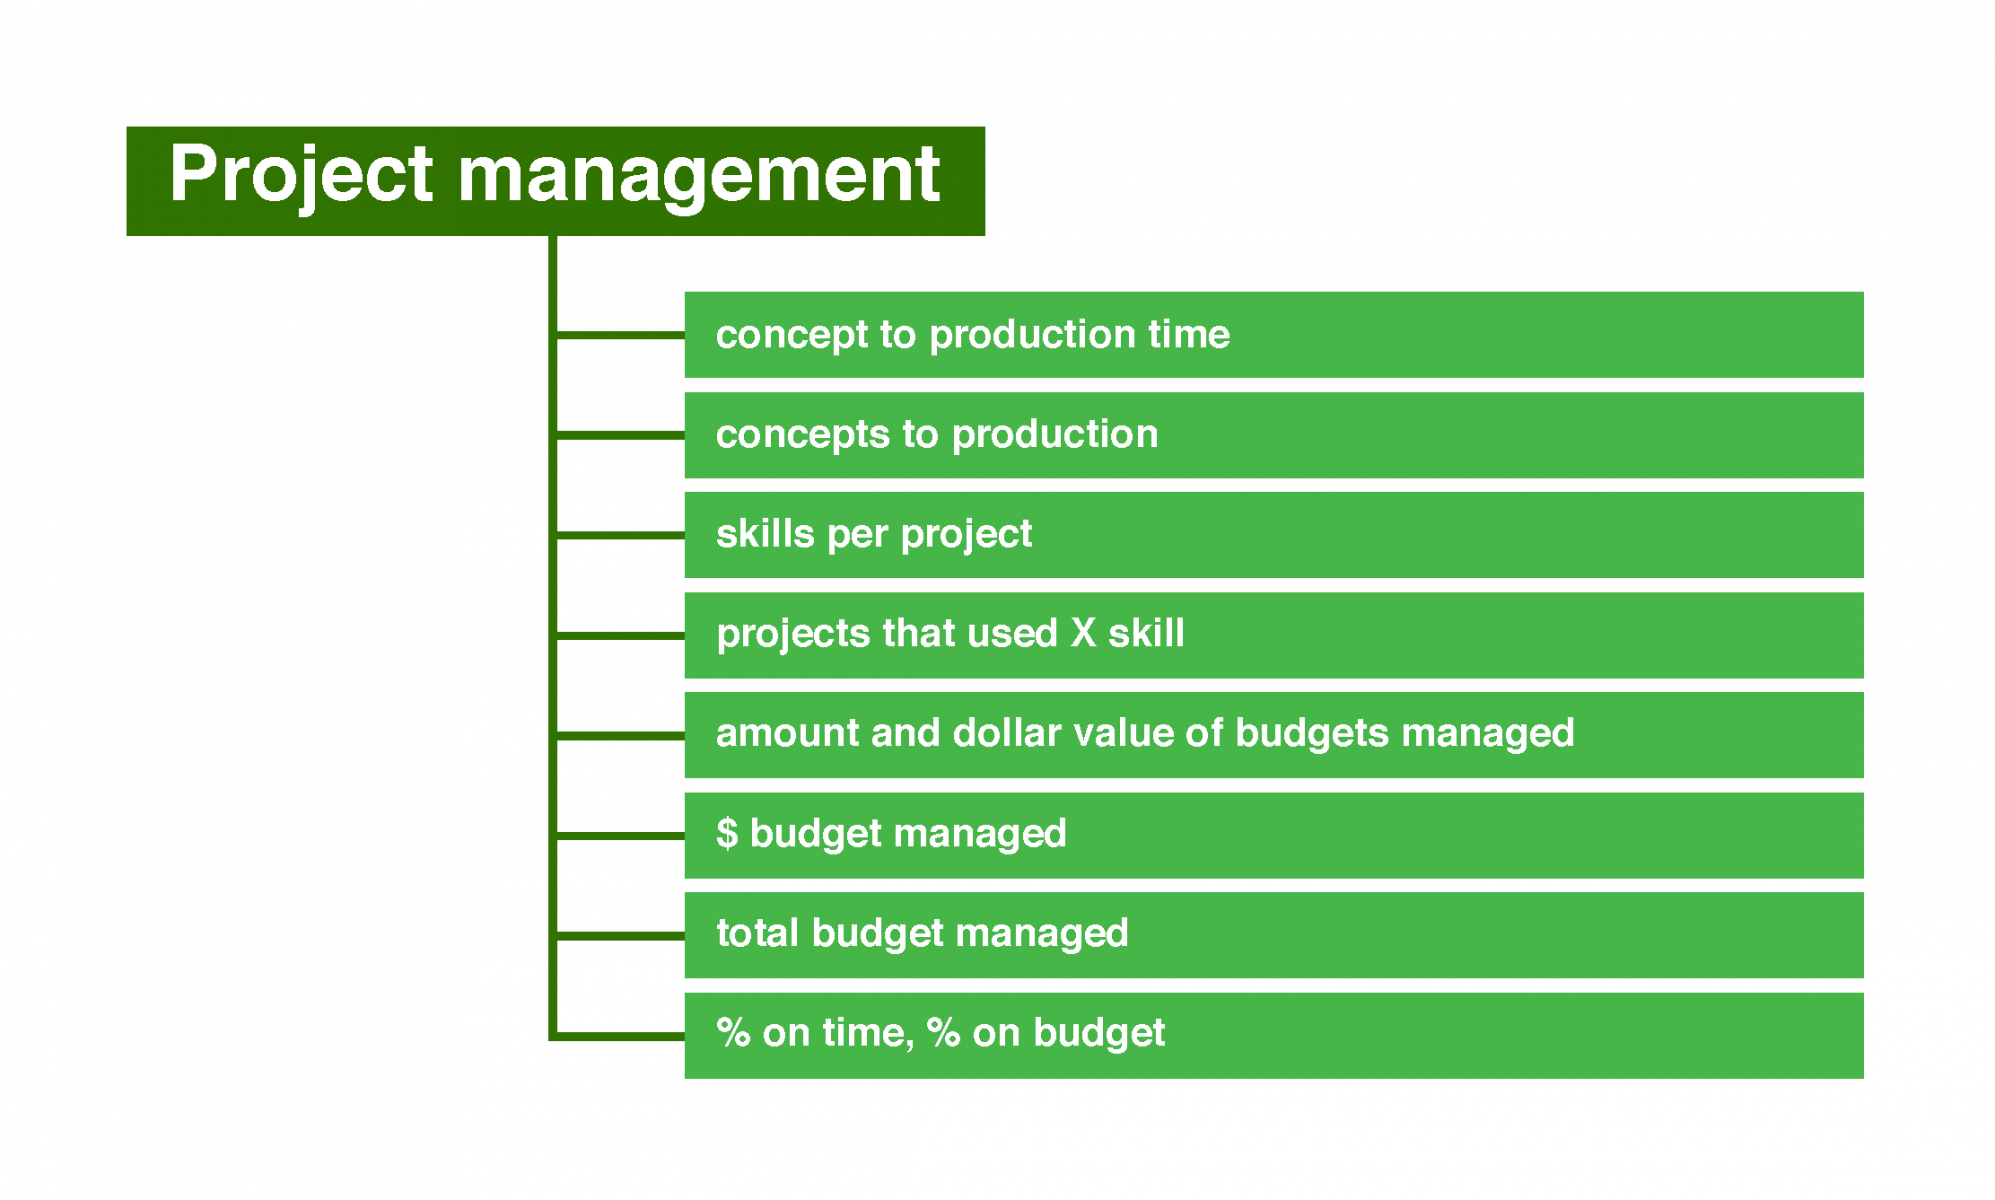 Potential numbers for project management